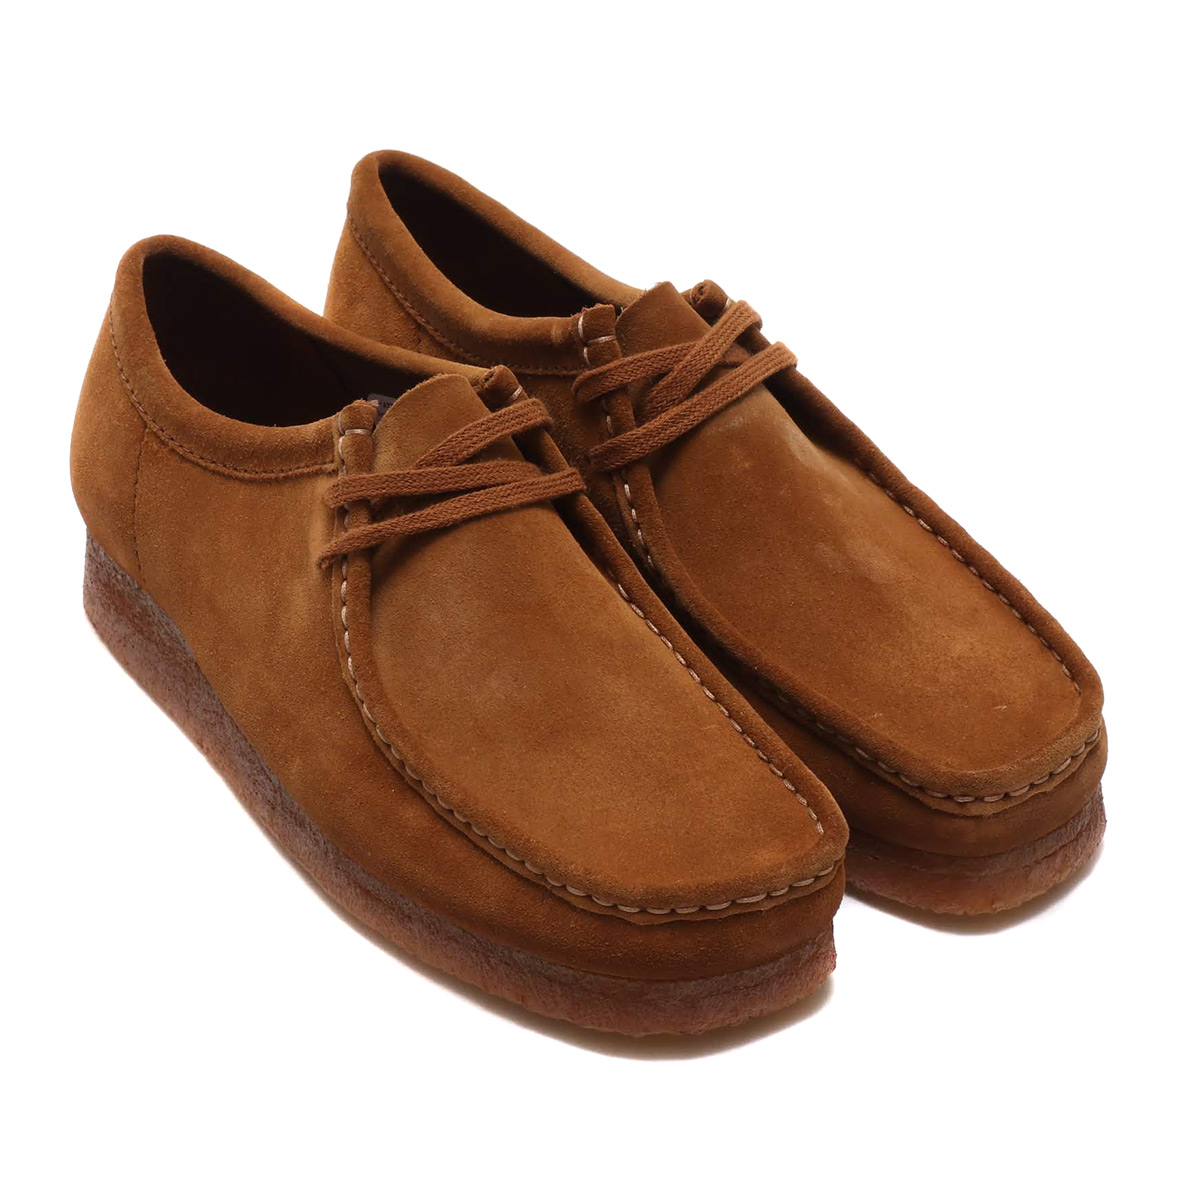 Clarks Wallabee (クラークス ワラビー)Cola Suede【メンズ ブーツ】19SP-I